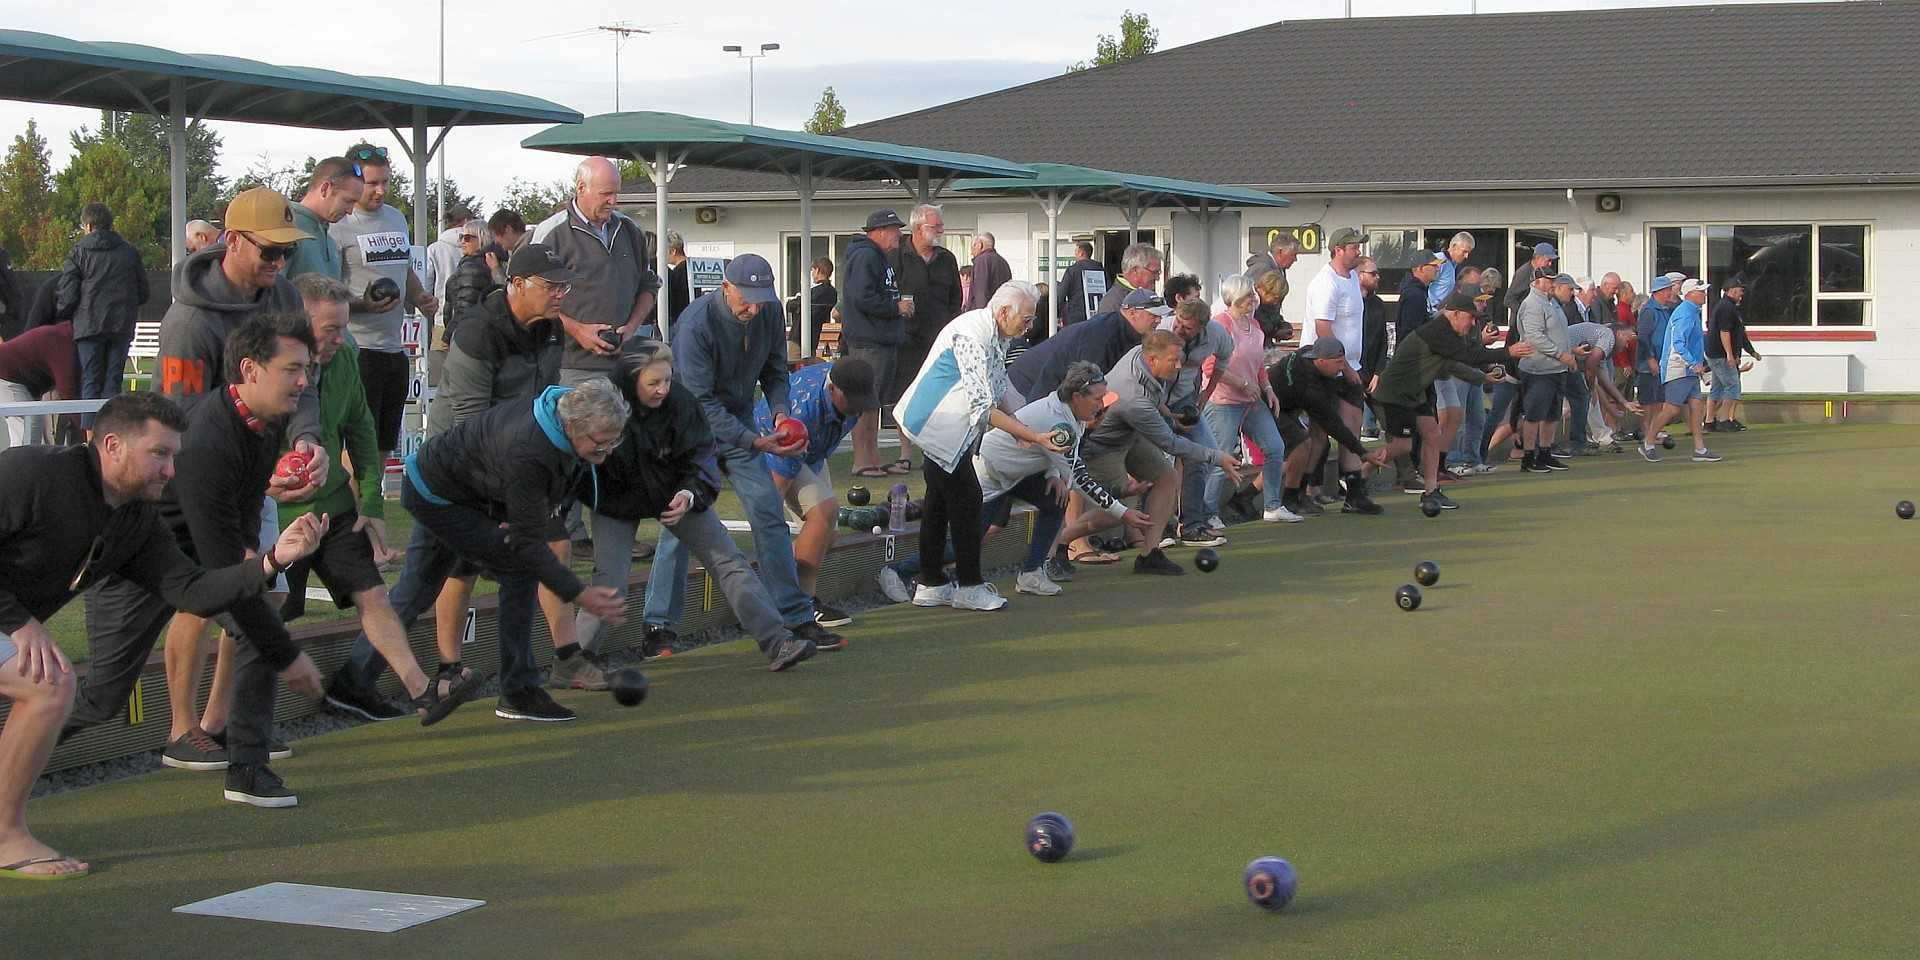 Community Bowls - 8 March 2021 - The Ditch to Ditch contest.